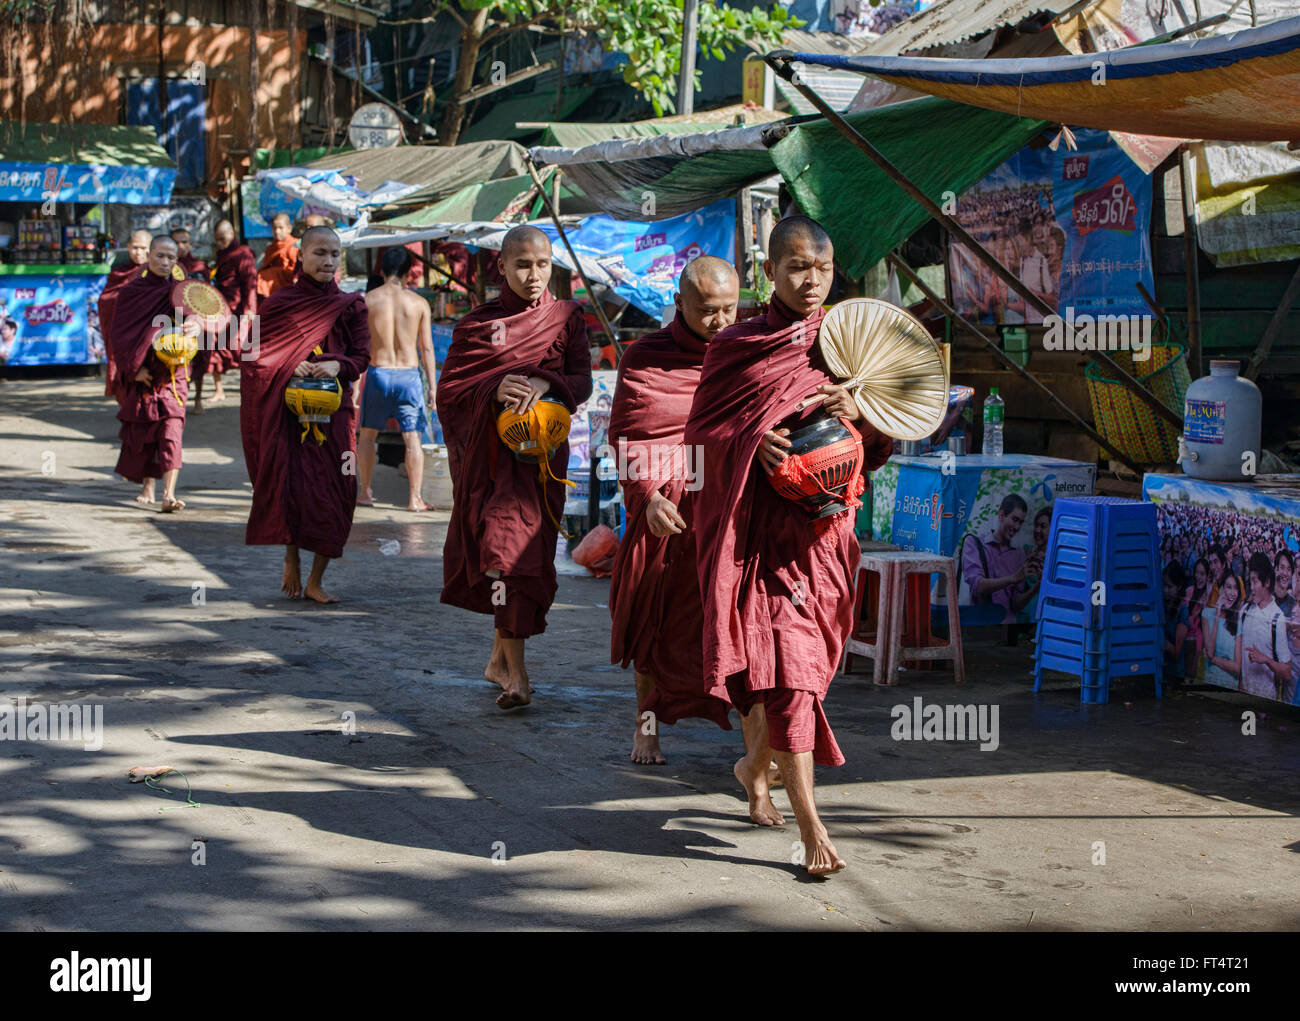 Monks on their morning alms rounds, Yangon, Myanmar - Stock Image